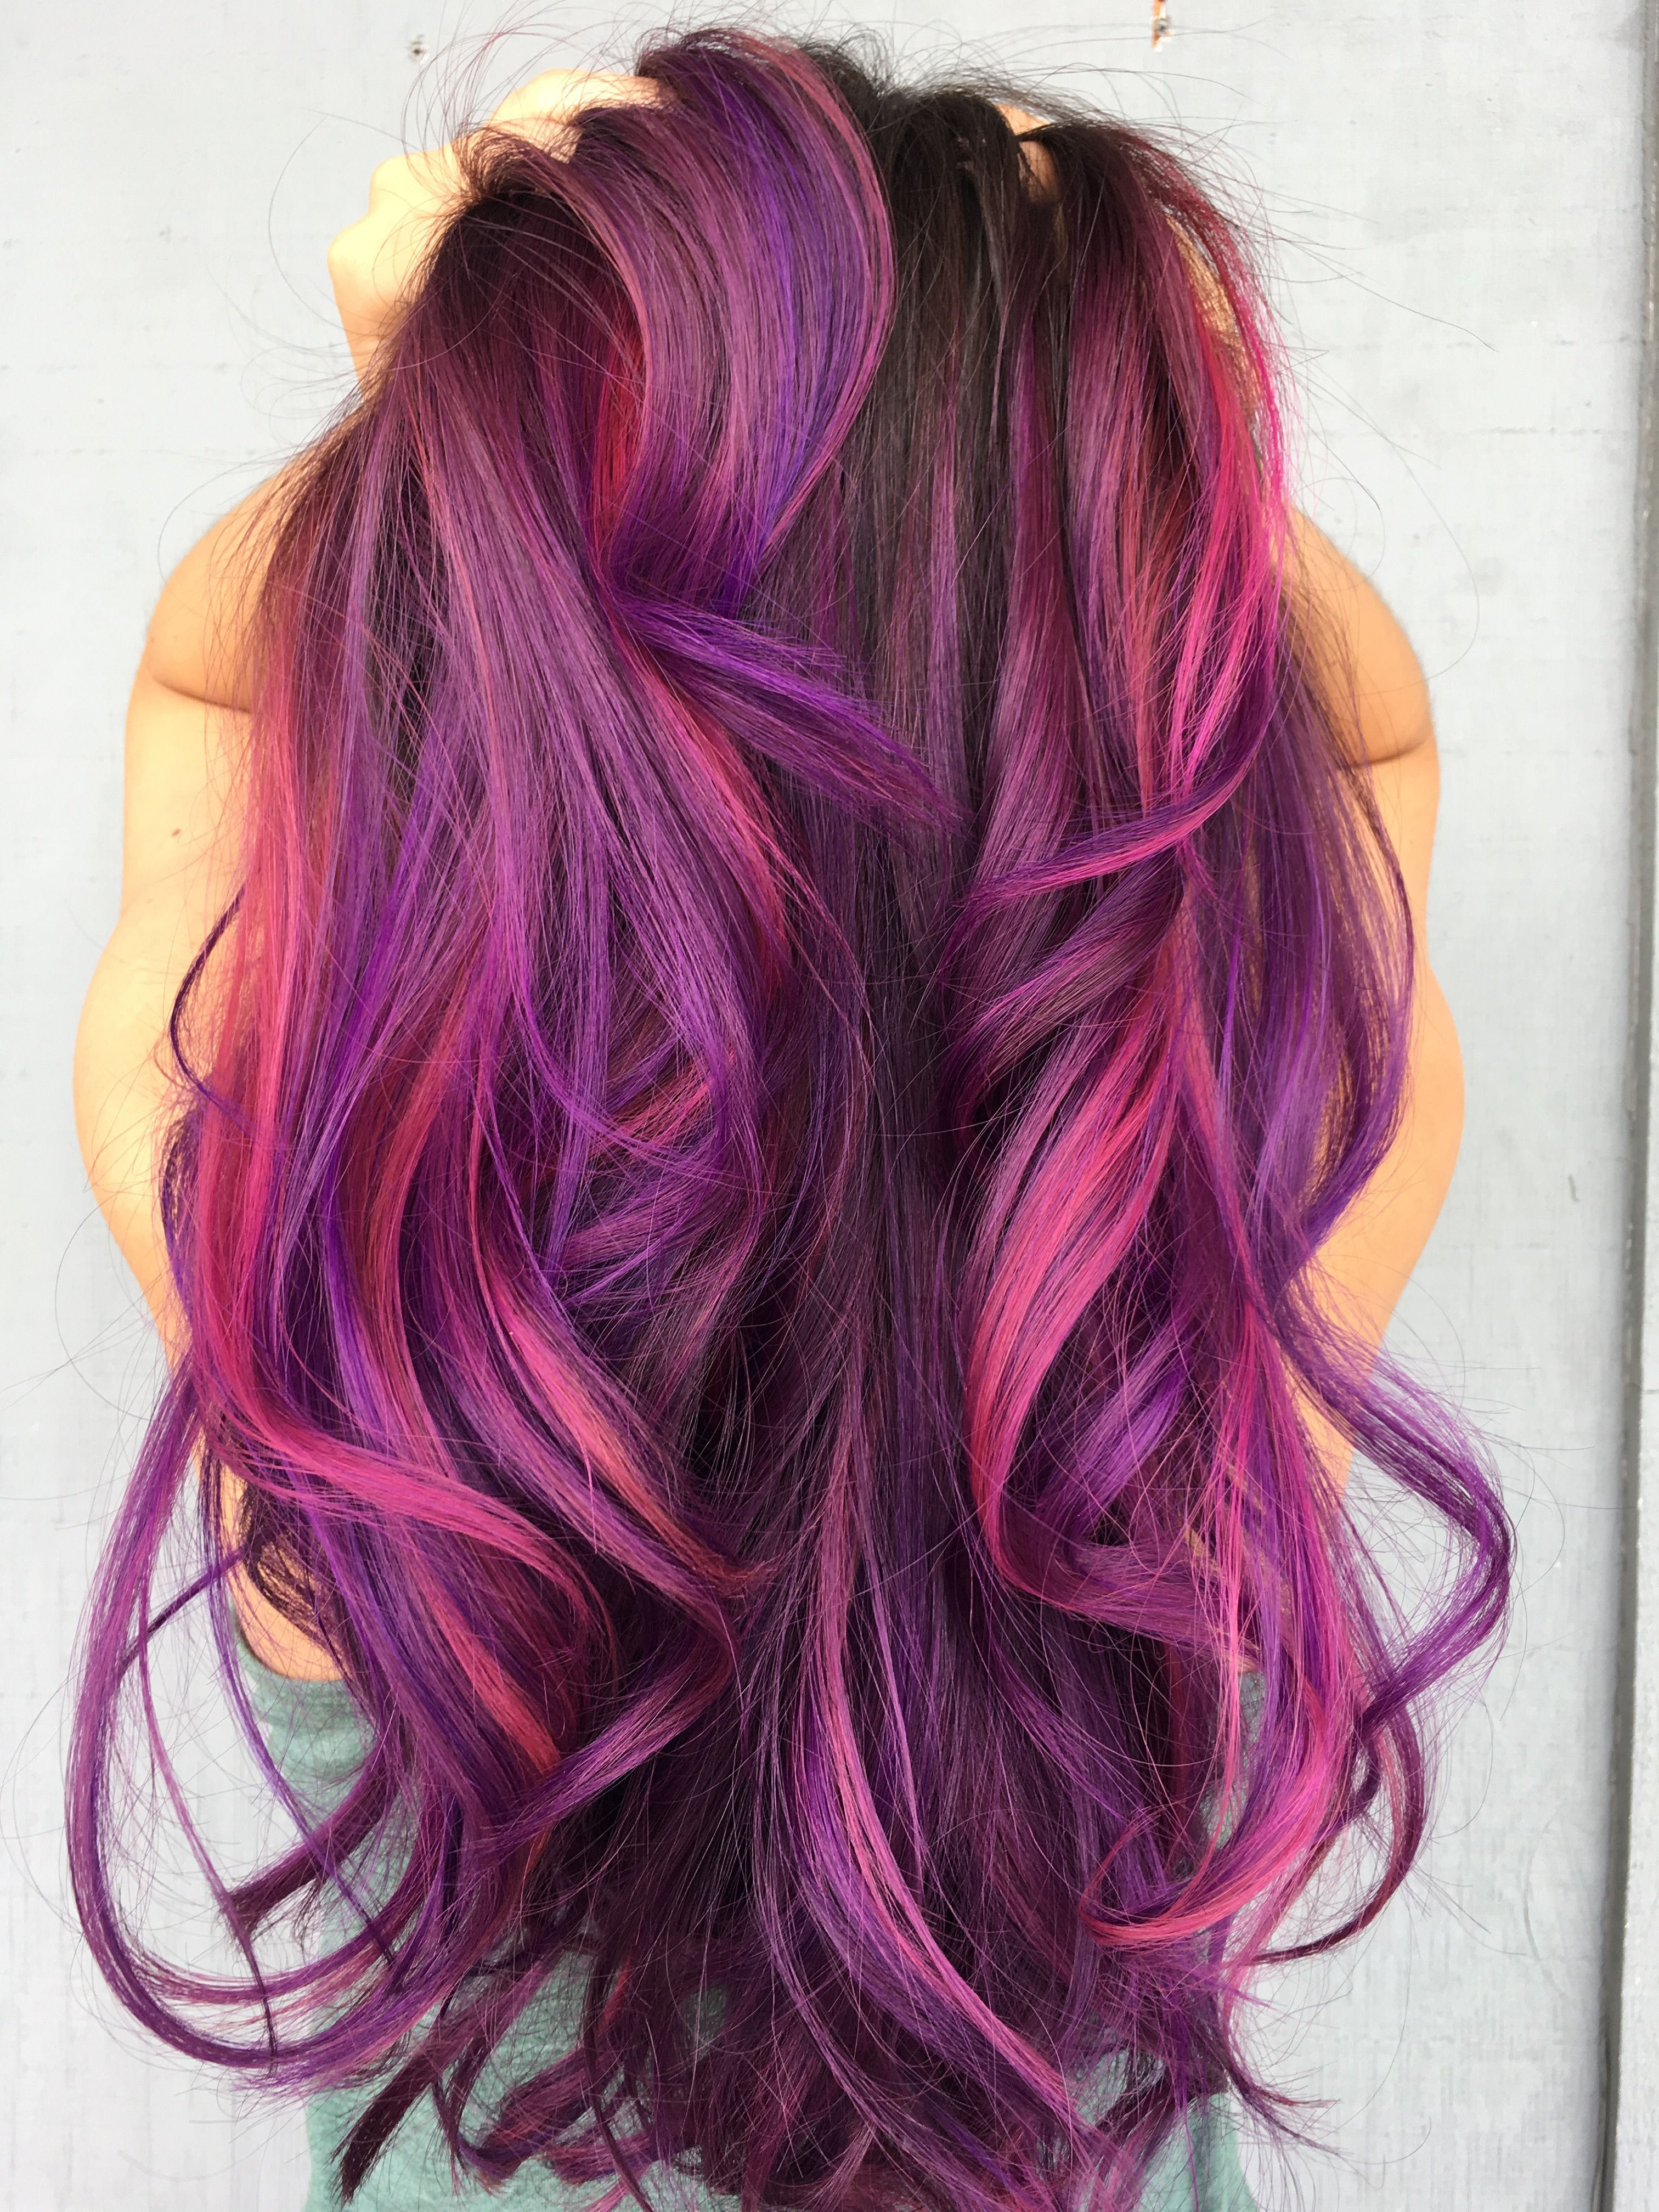 Purple pink creation looks slot like my current hair color hair